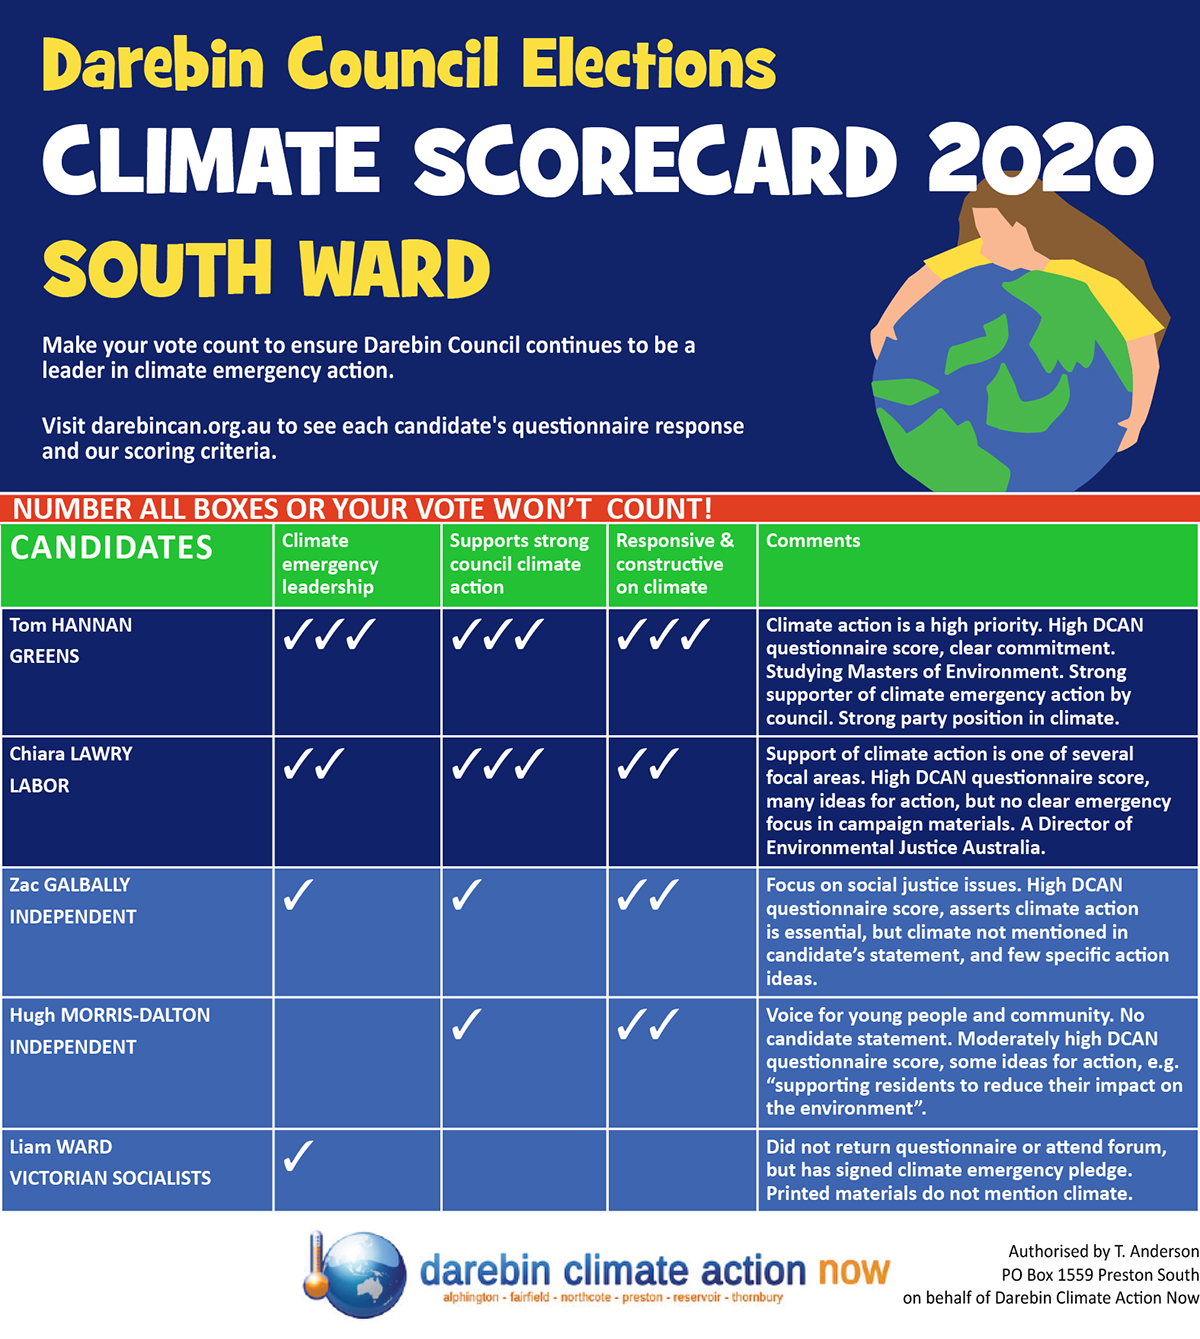 South Ward scorecard